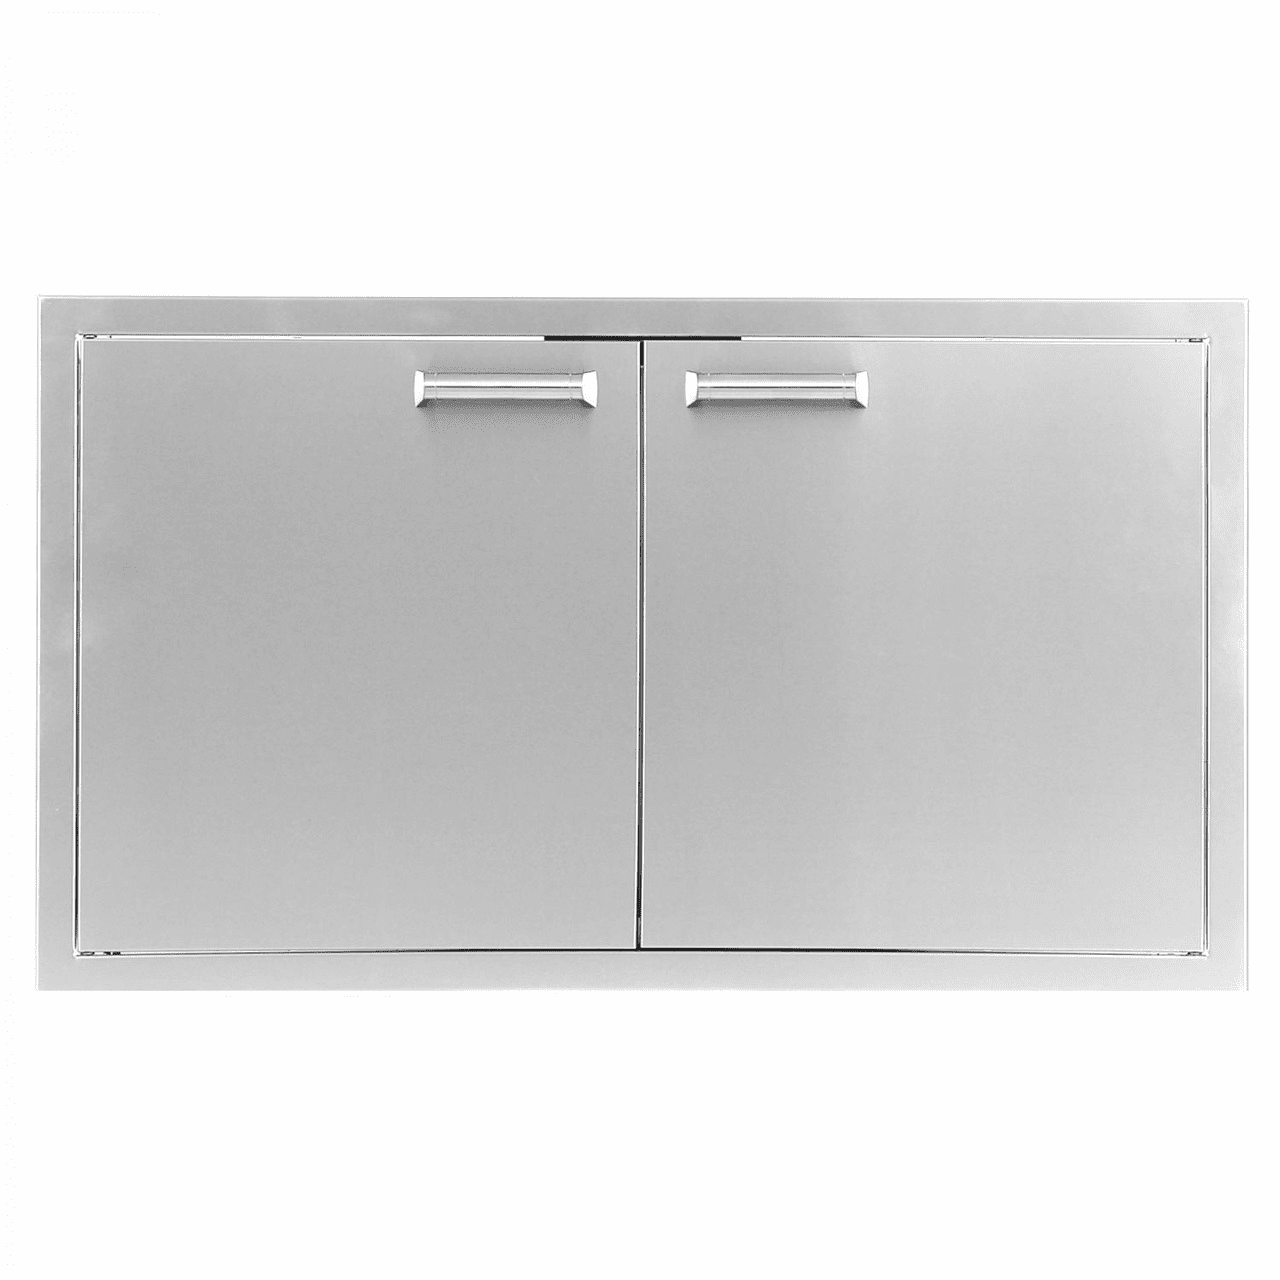 """PCM 350H 42"""" Double Access Door Stainless Steel"""